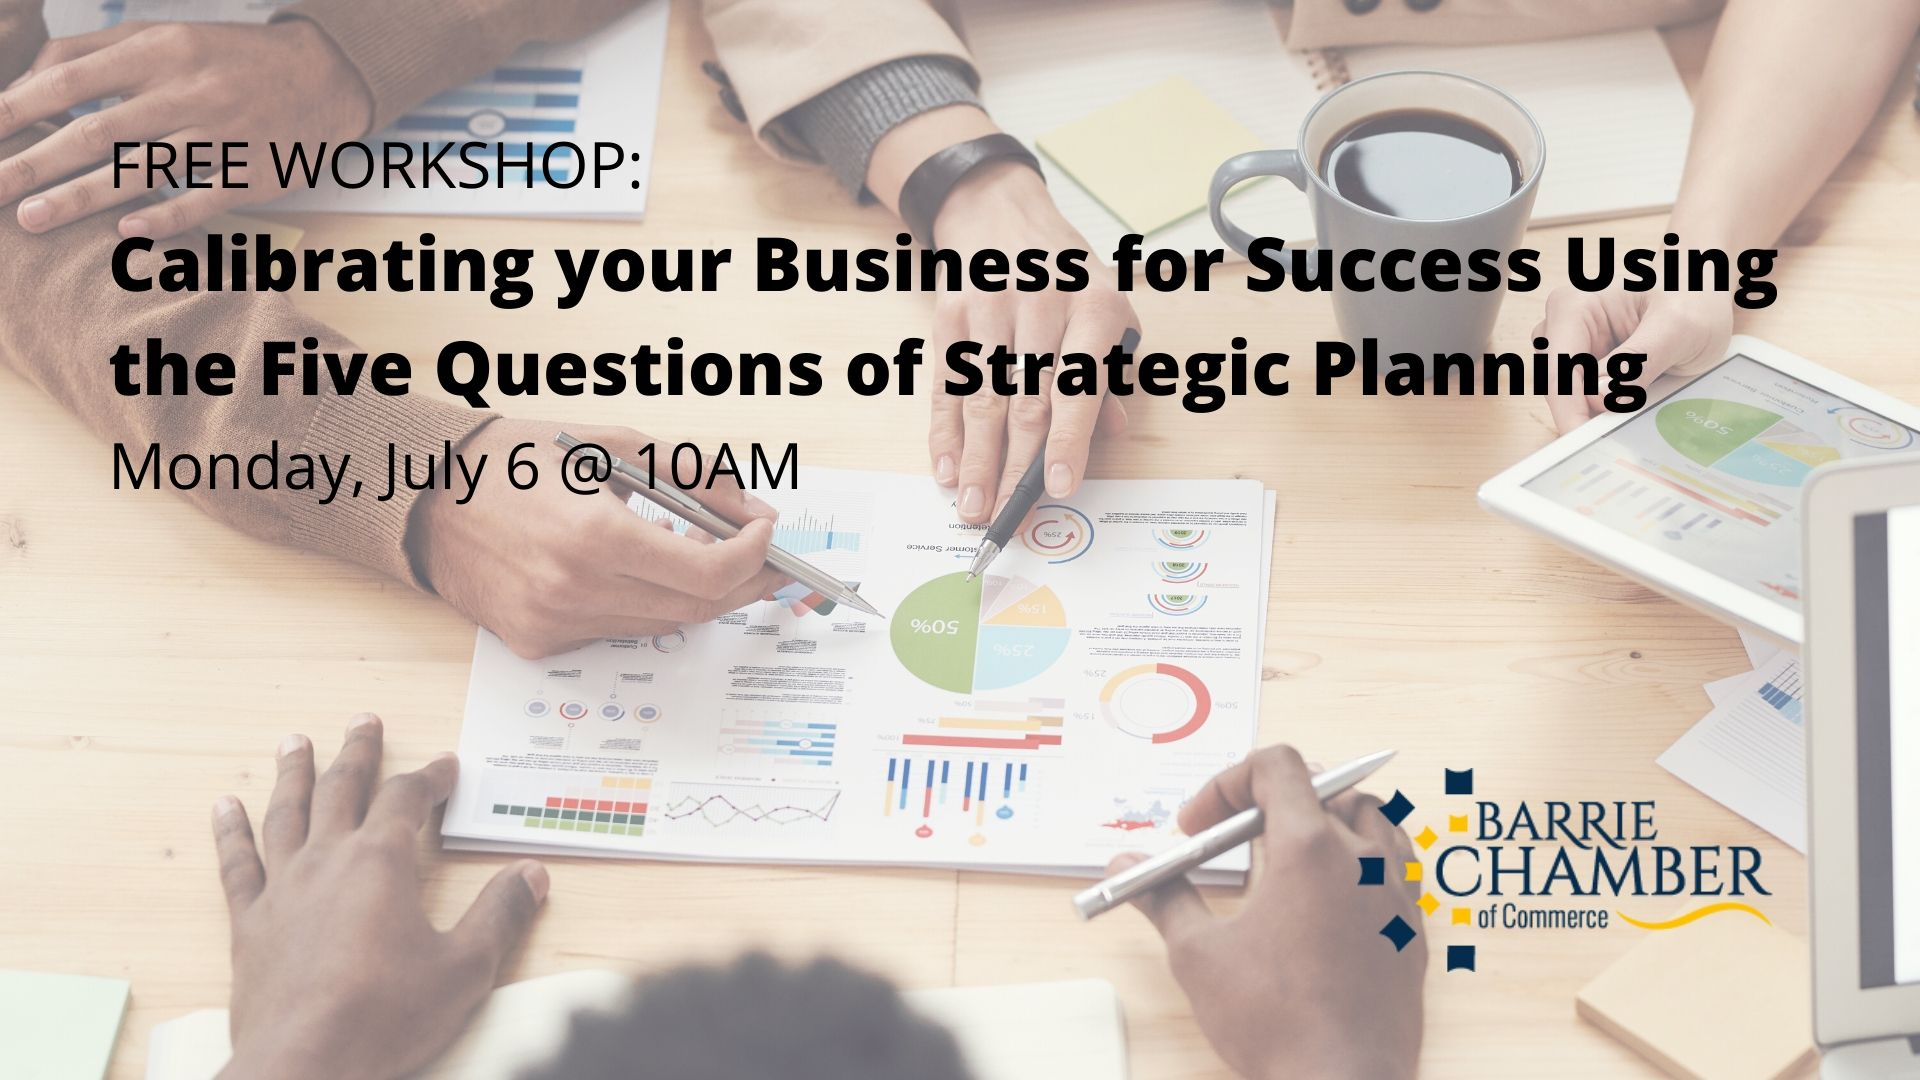 Calibrating your Business for Success Using the Five Questions of Strategic Planning